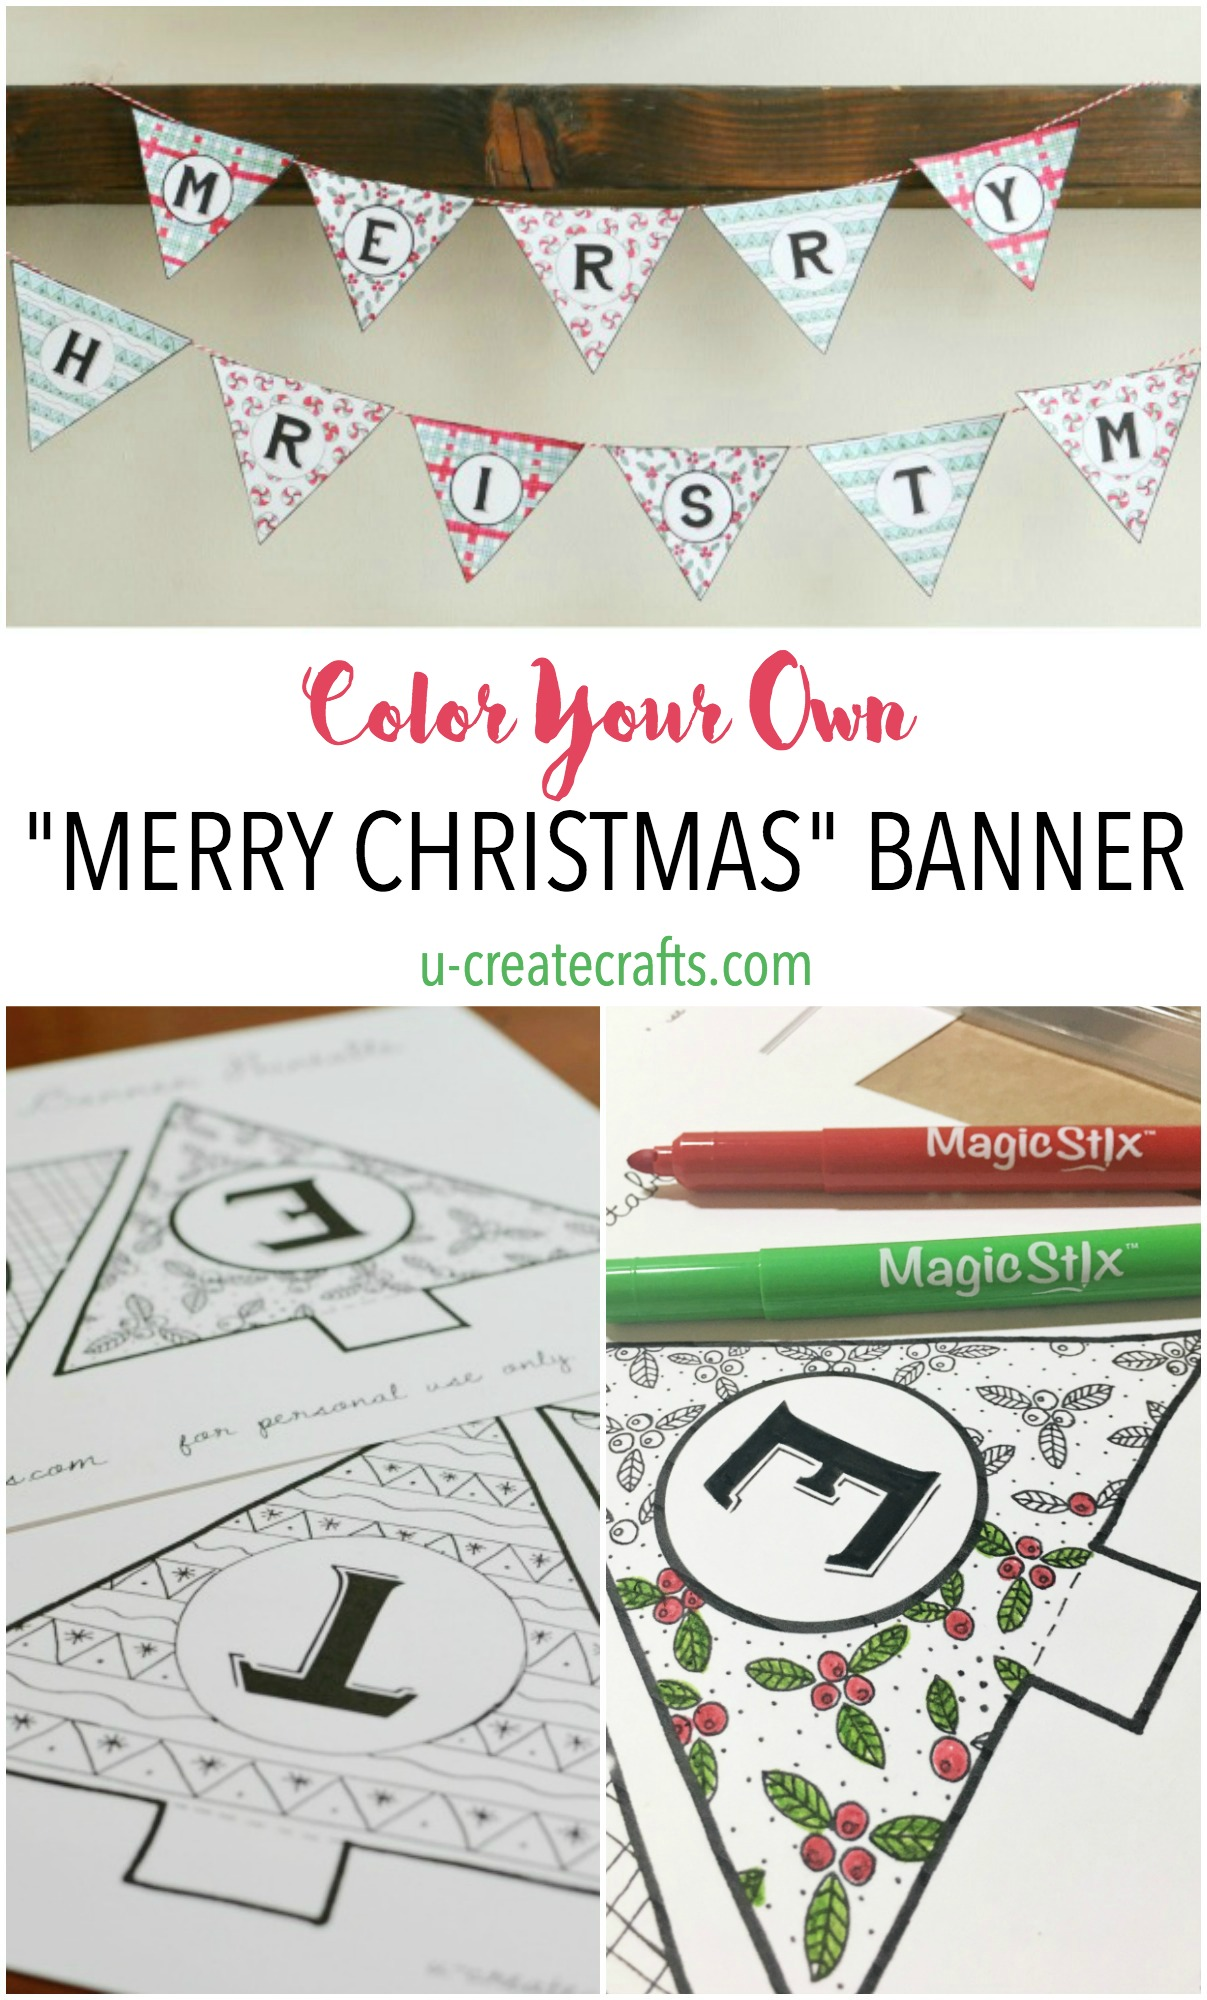 photograph relating to Printable Merry Christmas Banner called Merry Xmas Coloring Banner - U Make